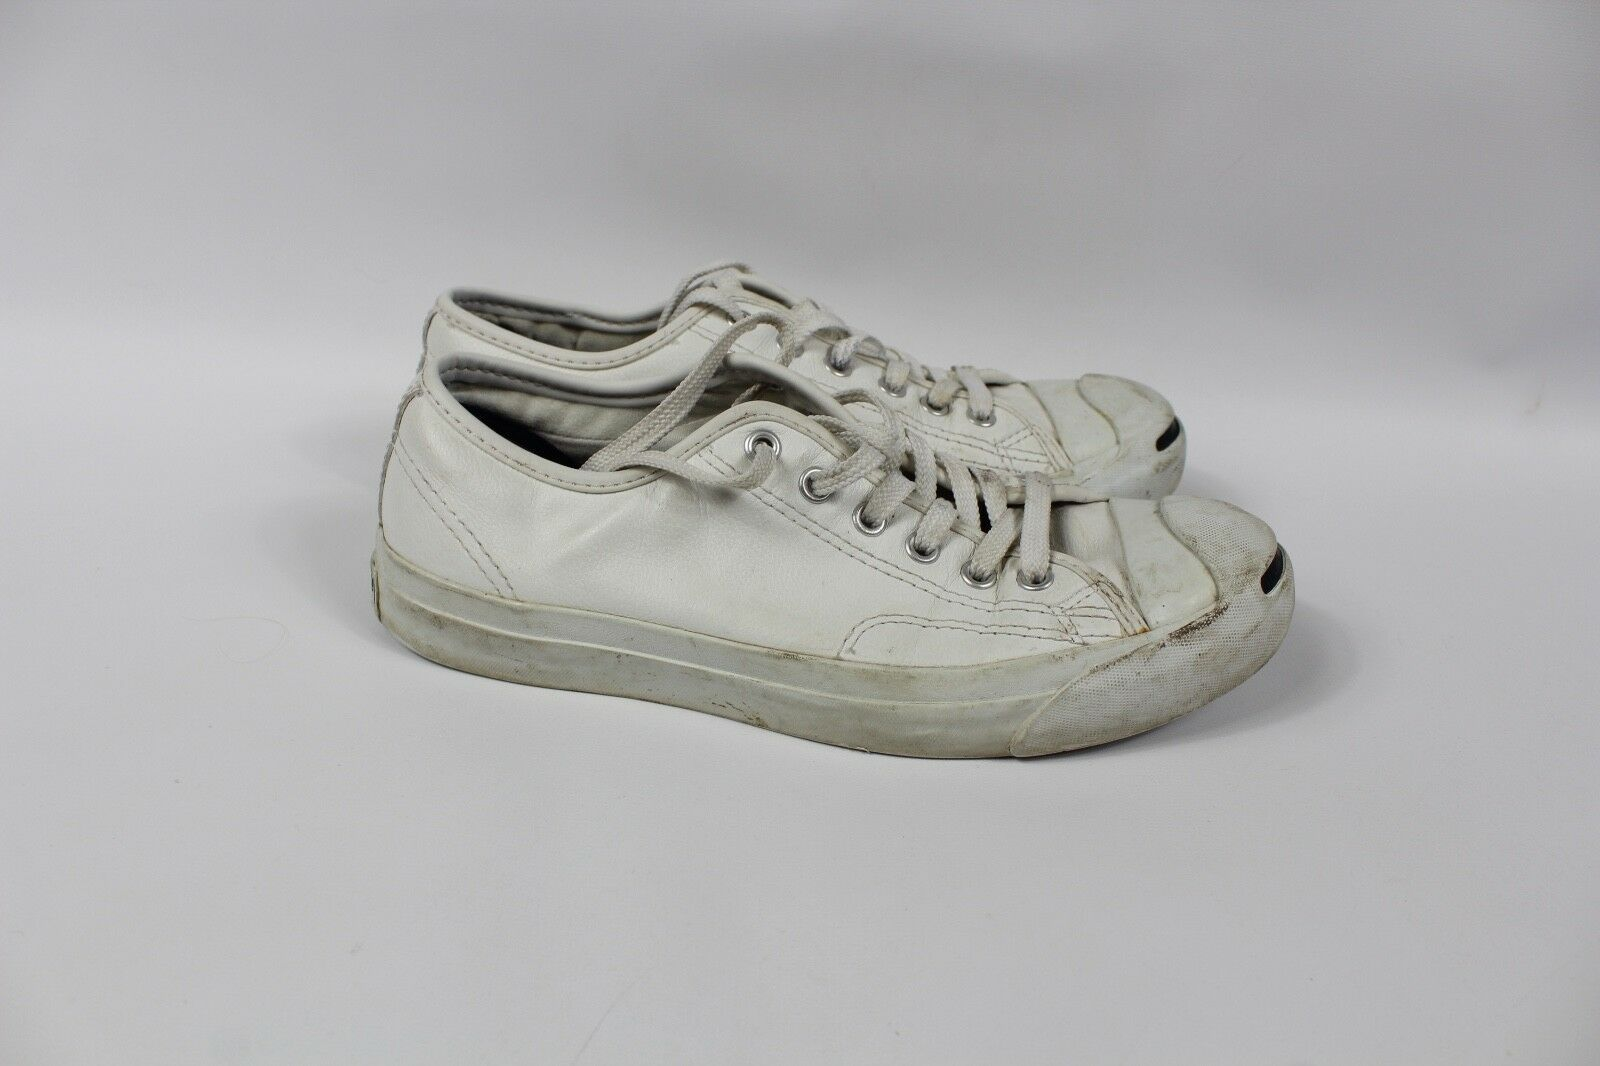 Converse Jack Purcell Mens Size 7 Womens 8.5 Leather Lace Sneakers Shoes White